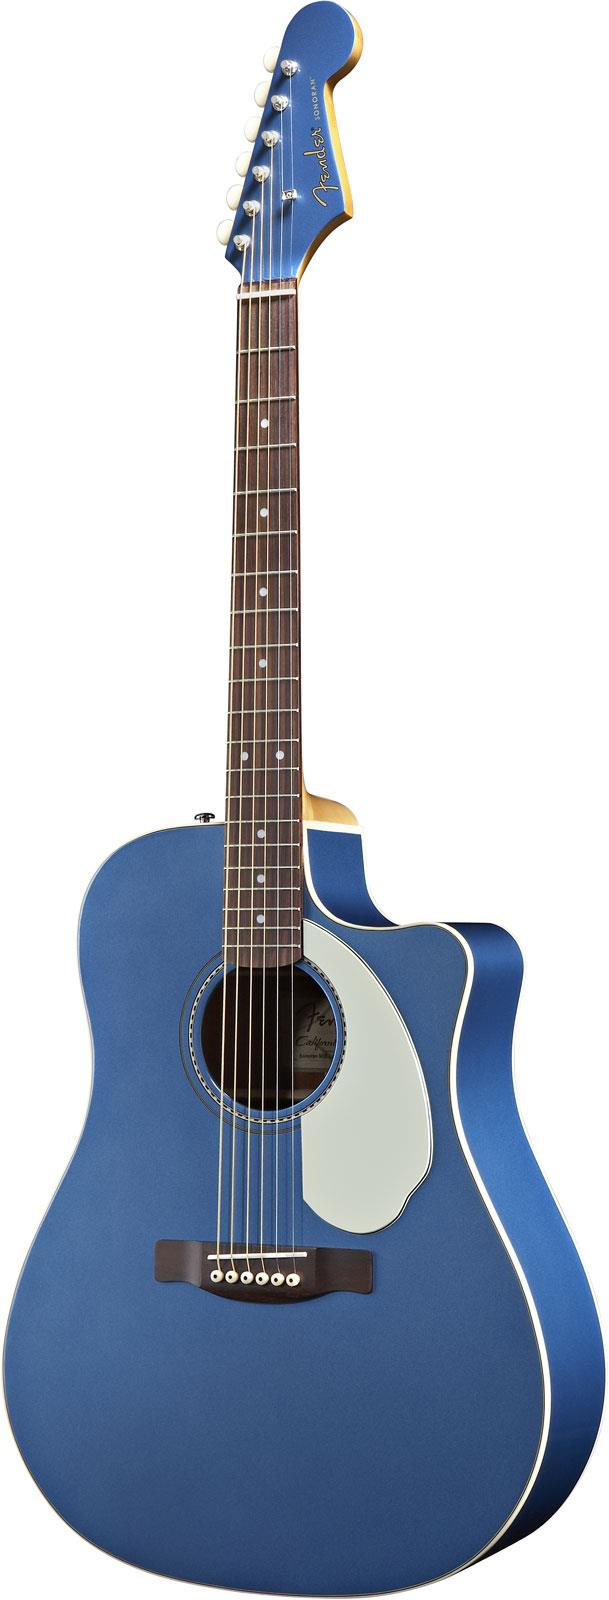 Fender Sonoran SCE Lake Placid Blue Acoustic Electric Cutaway Dreadnought Guitar